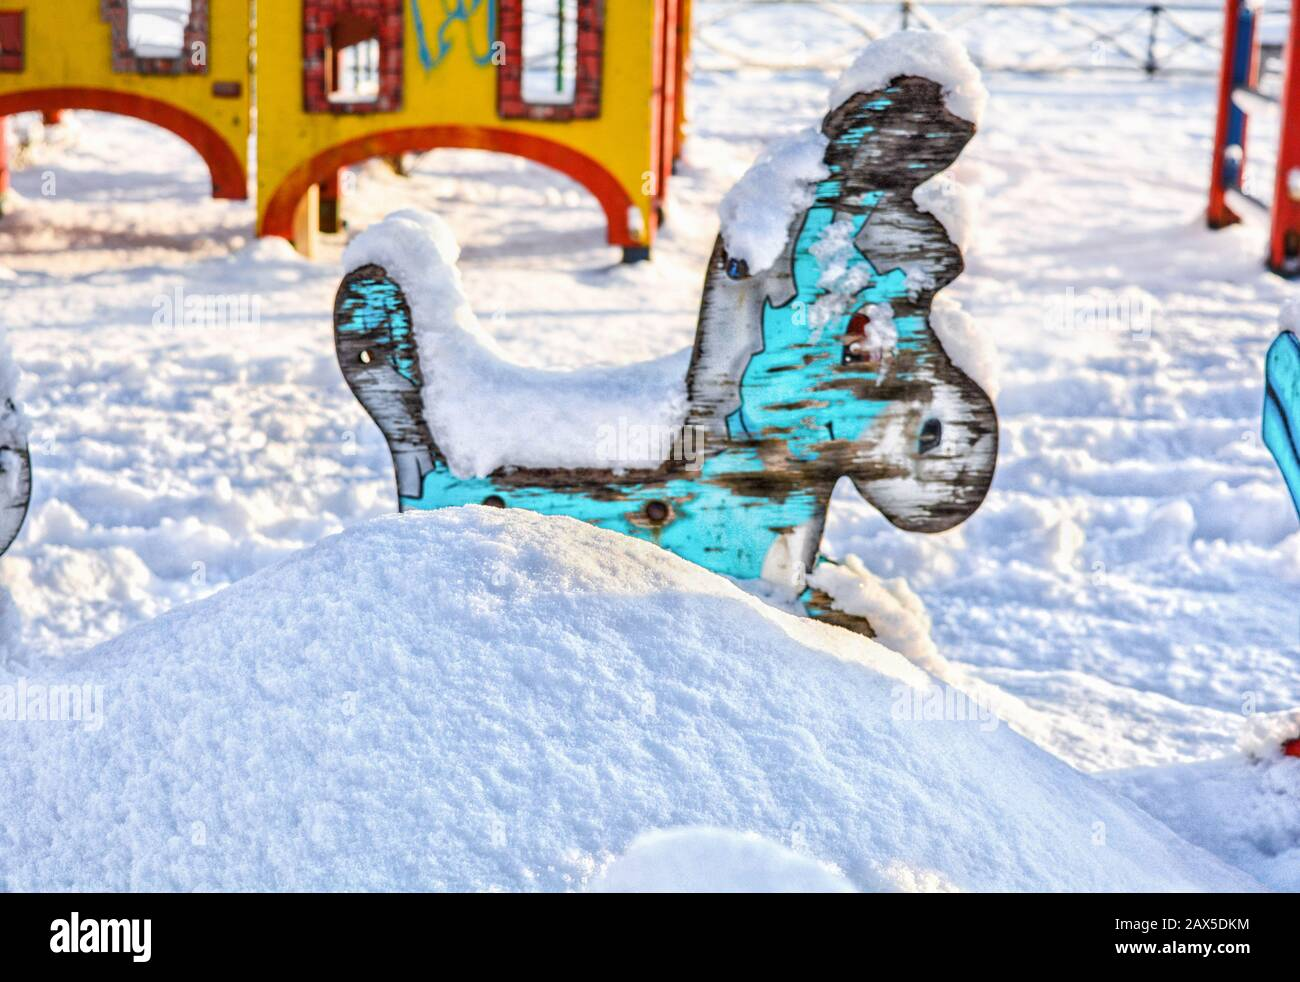 Old children carousel with blue donkey on snow-covered children playground is covered with white fluffy snow. Snowdrift with wooden donkey Stock Photo